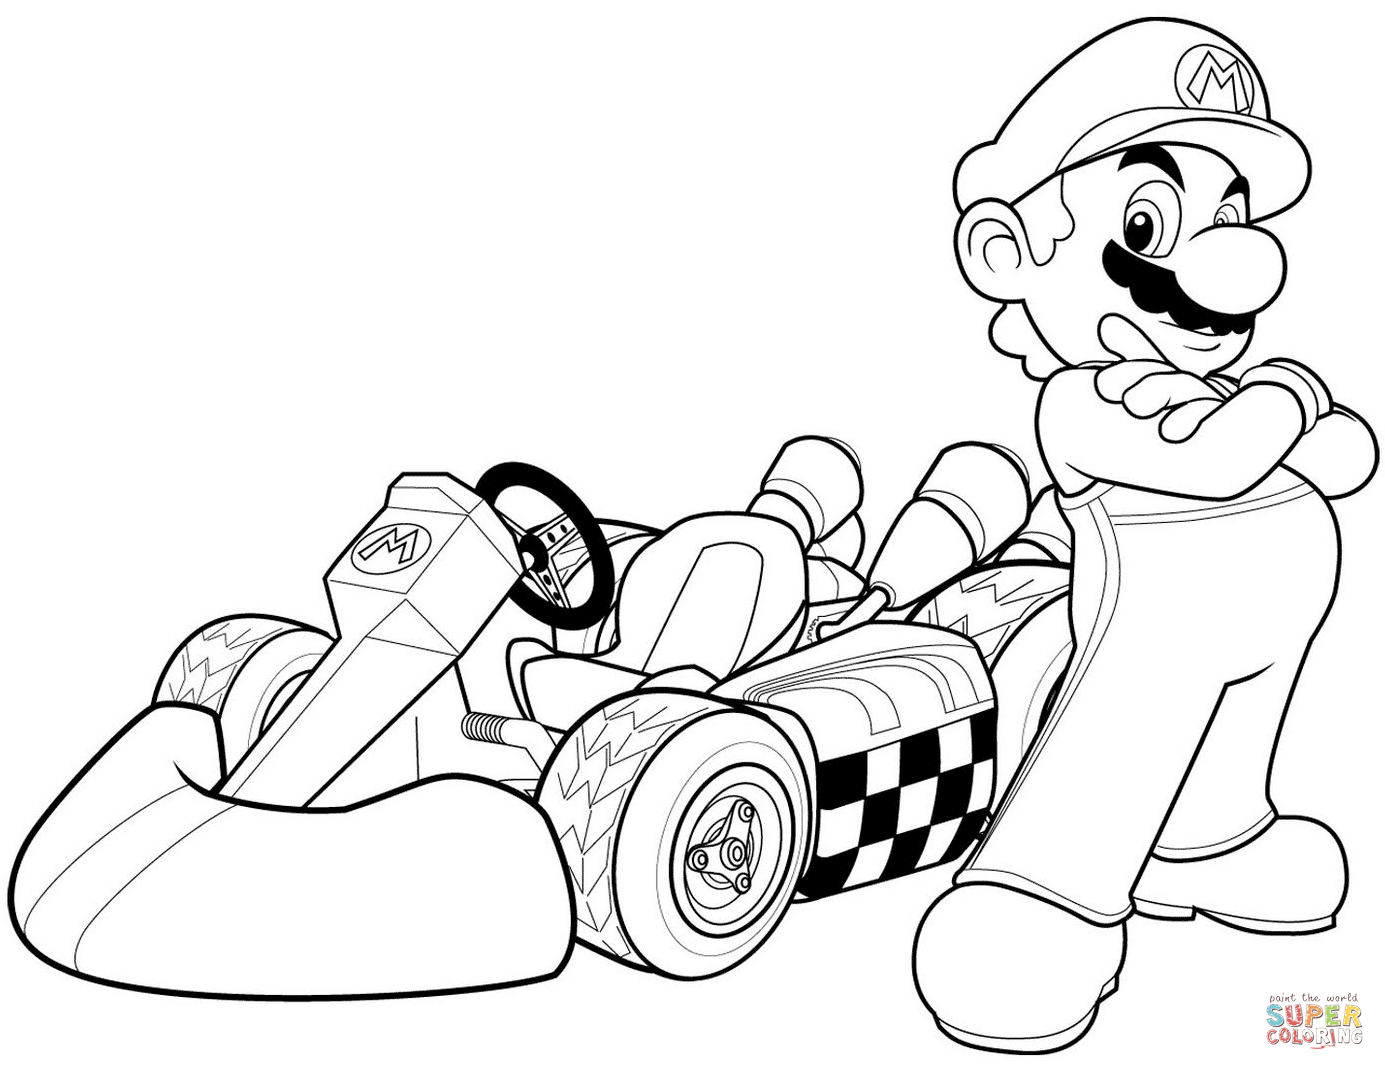 Super Mario Bros Coloring Pages to Print Of Super Mario Coloring Pages Bonnieleepanda Gallery